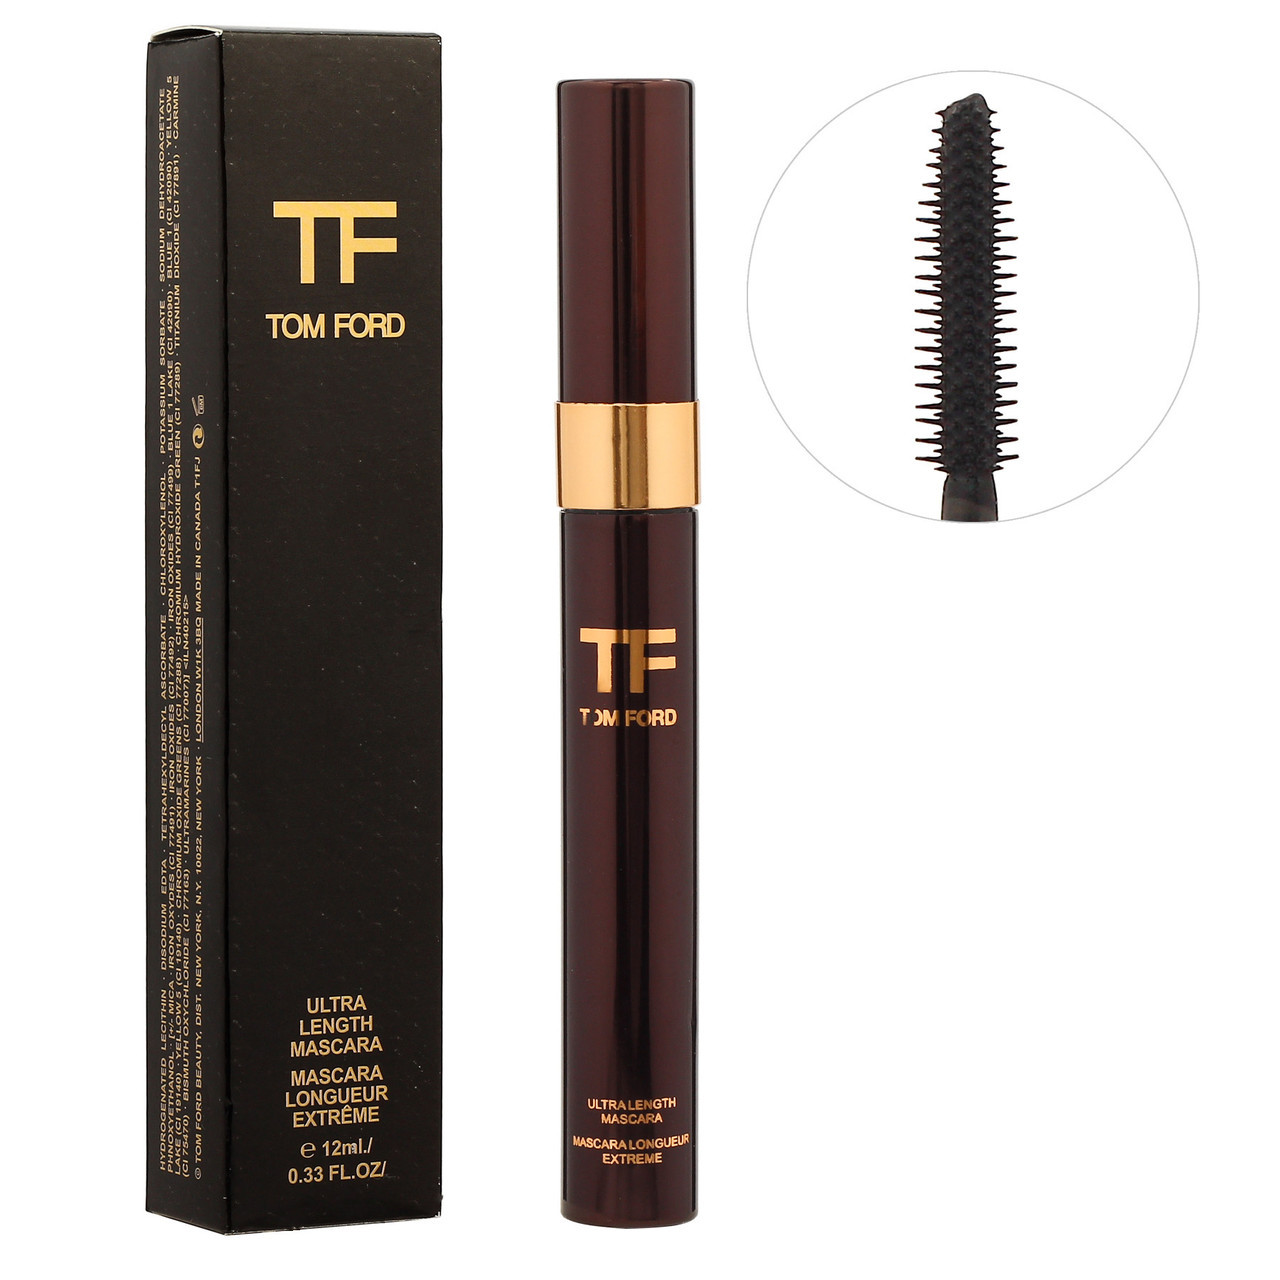 Тушь для ресниц TOM FORD Ultra Length Mascara